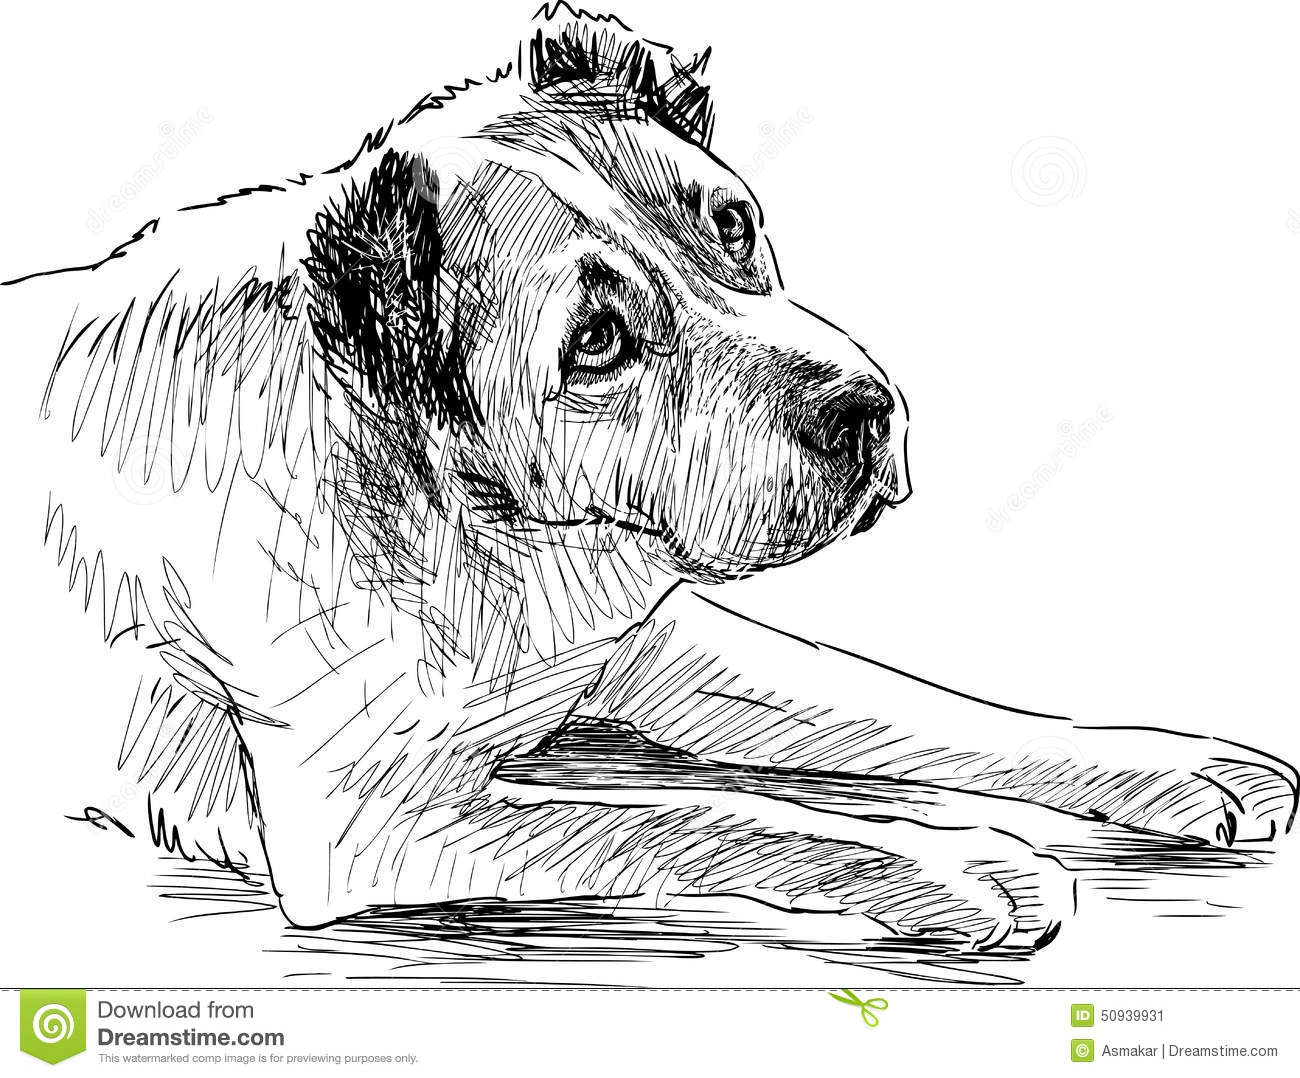 Sketch Of A Sad Dog Stock Vector. Image Of Vector Hand - 50939931